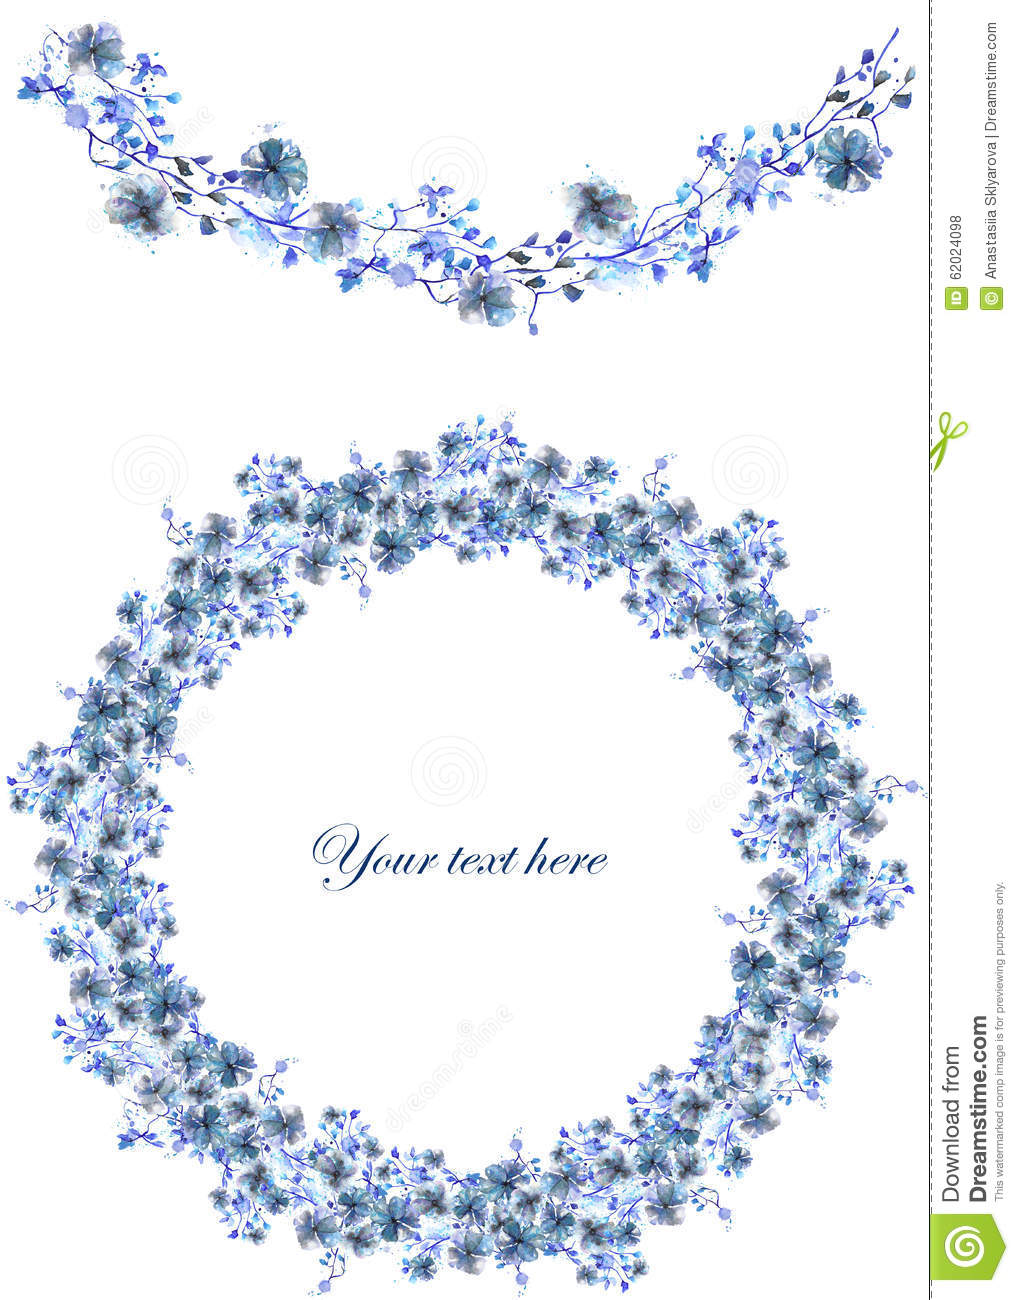 Frame border garland and wreath of blue flowers and branches with frame border garland and wreath of blue flowers and branches with the blue leaves painted in watercolor on a white background illustration 62024098 izmirmasajfo